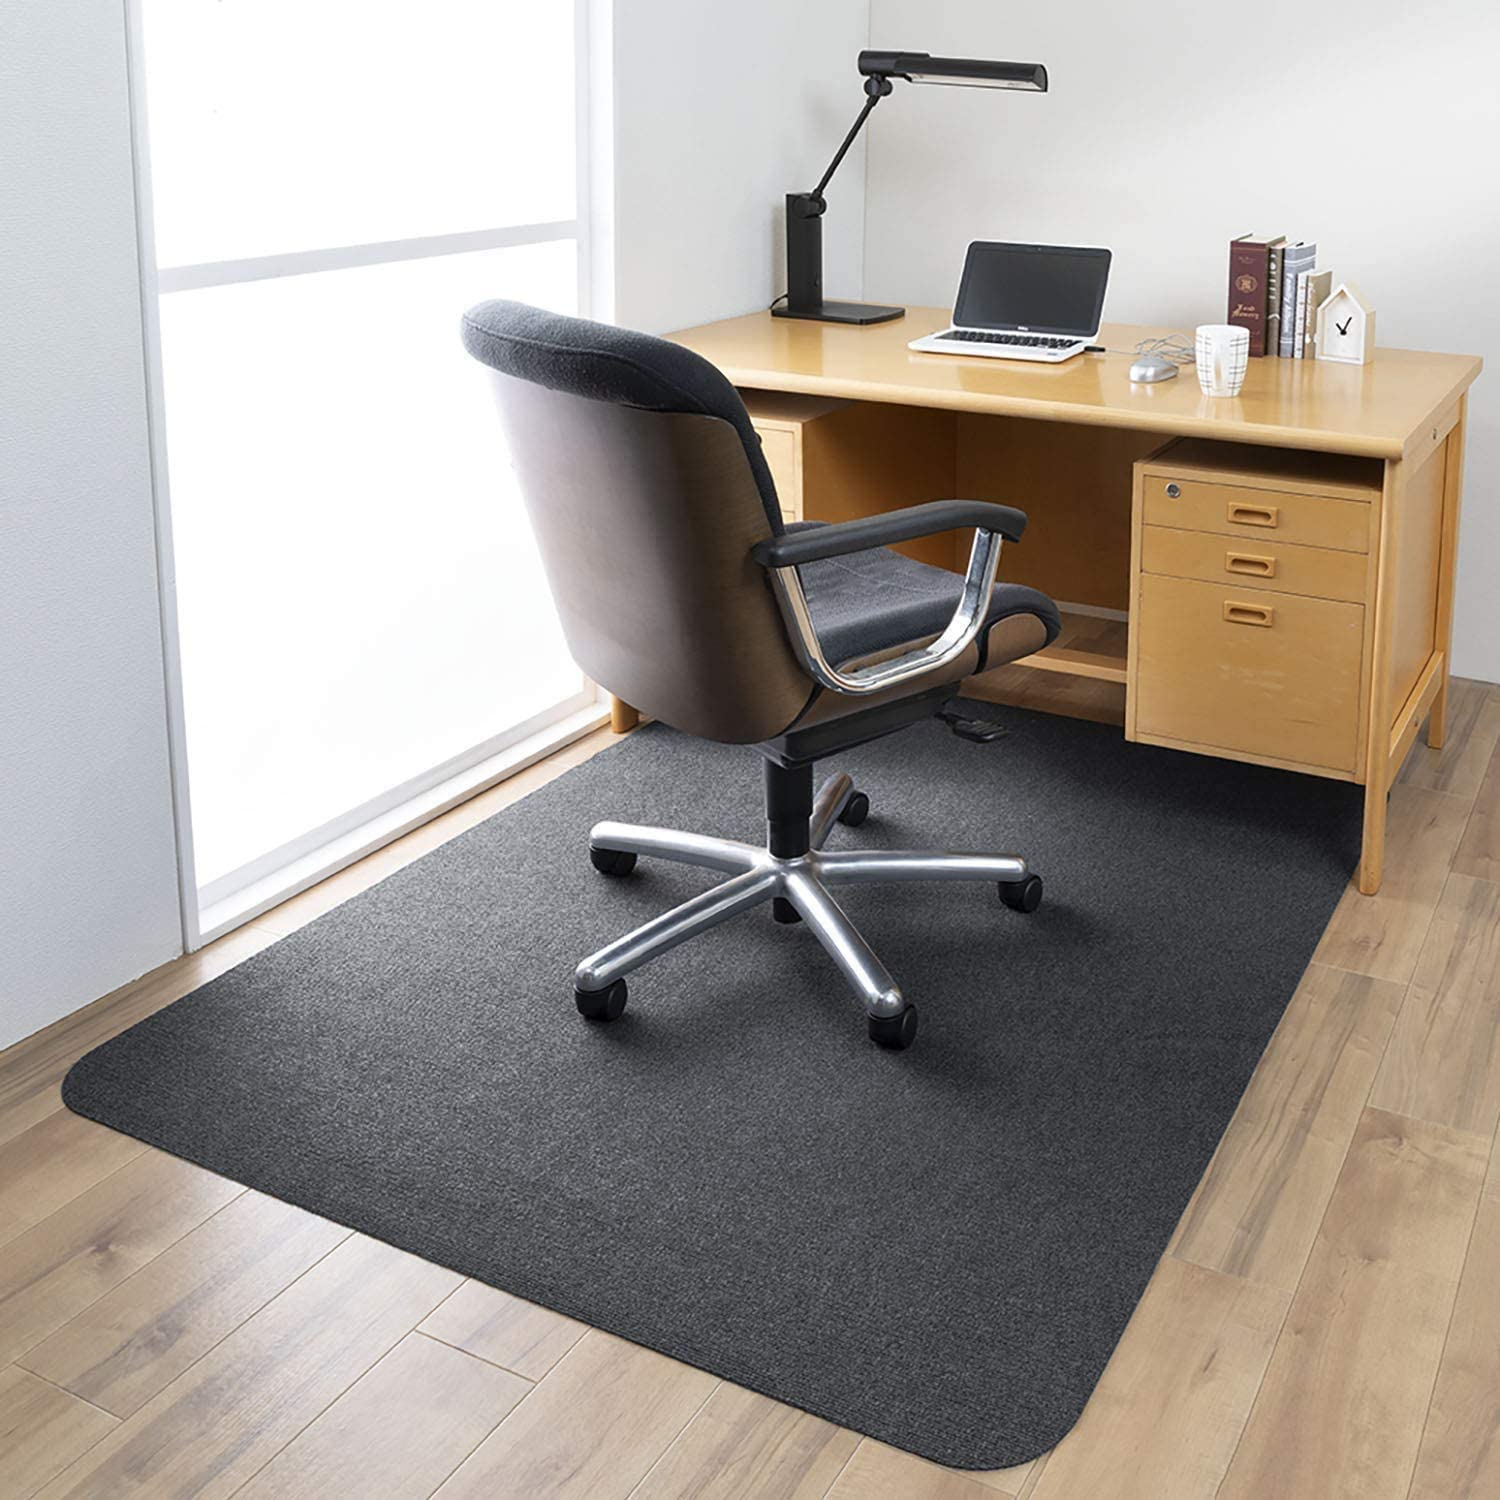 "55""×35"" Office Chair Mat for Hardwood Floors, 0.16"" Thick Non-Slip Office Chair Mat, Rectangular Non-Toxic Floor Protector, Non-Woven Fabric Surface, Not for Carpet(Black)"